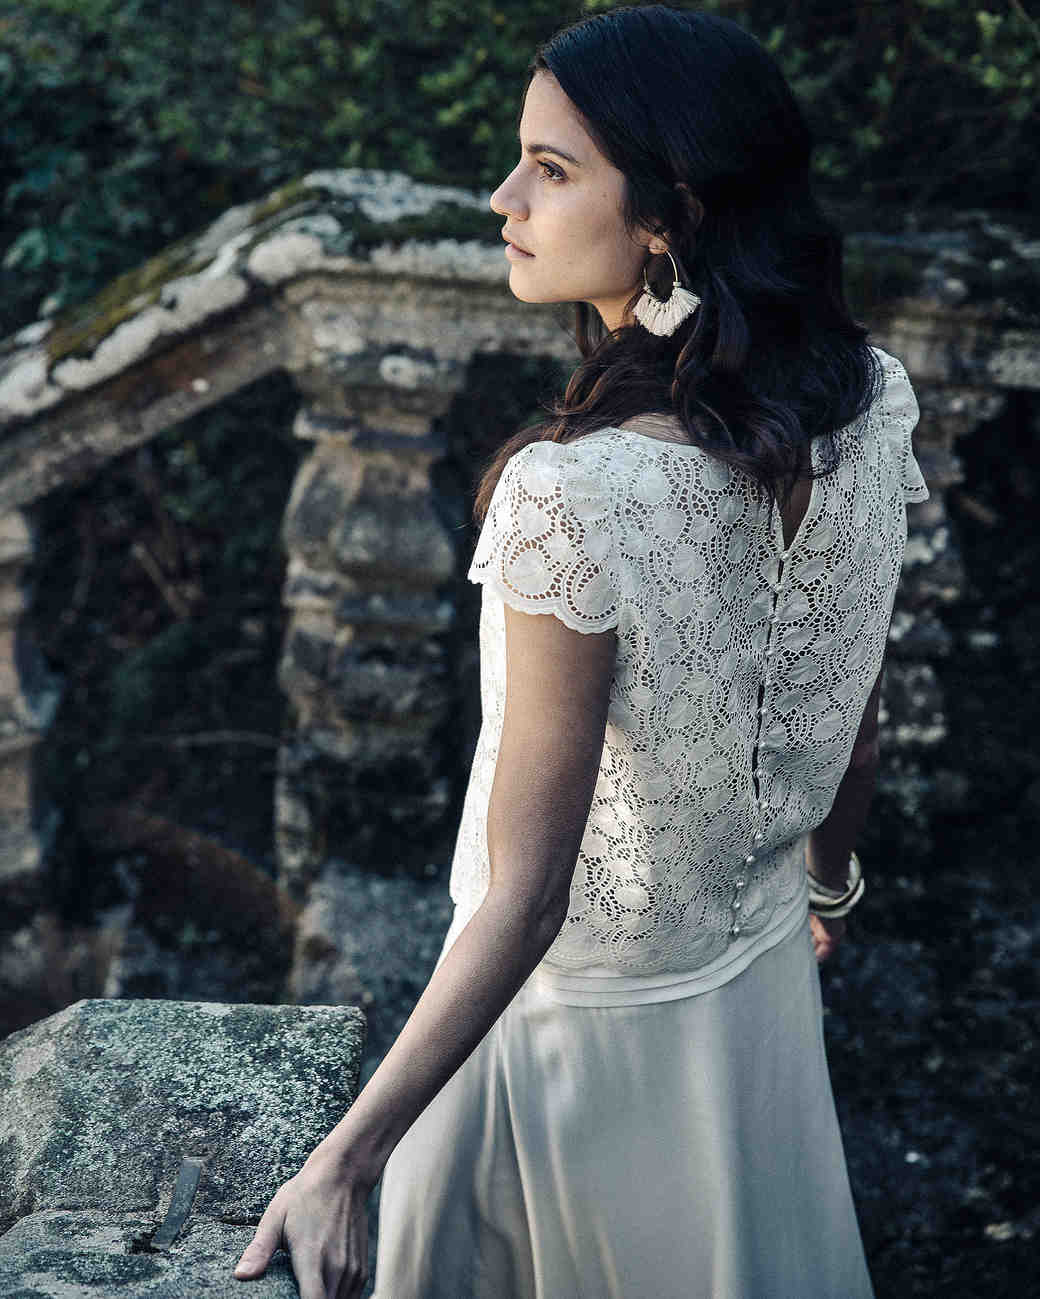 Laure de Sagazan Cap sleeve lace Wedding Dress Spring 2018